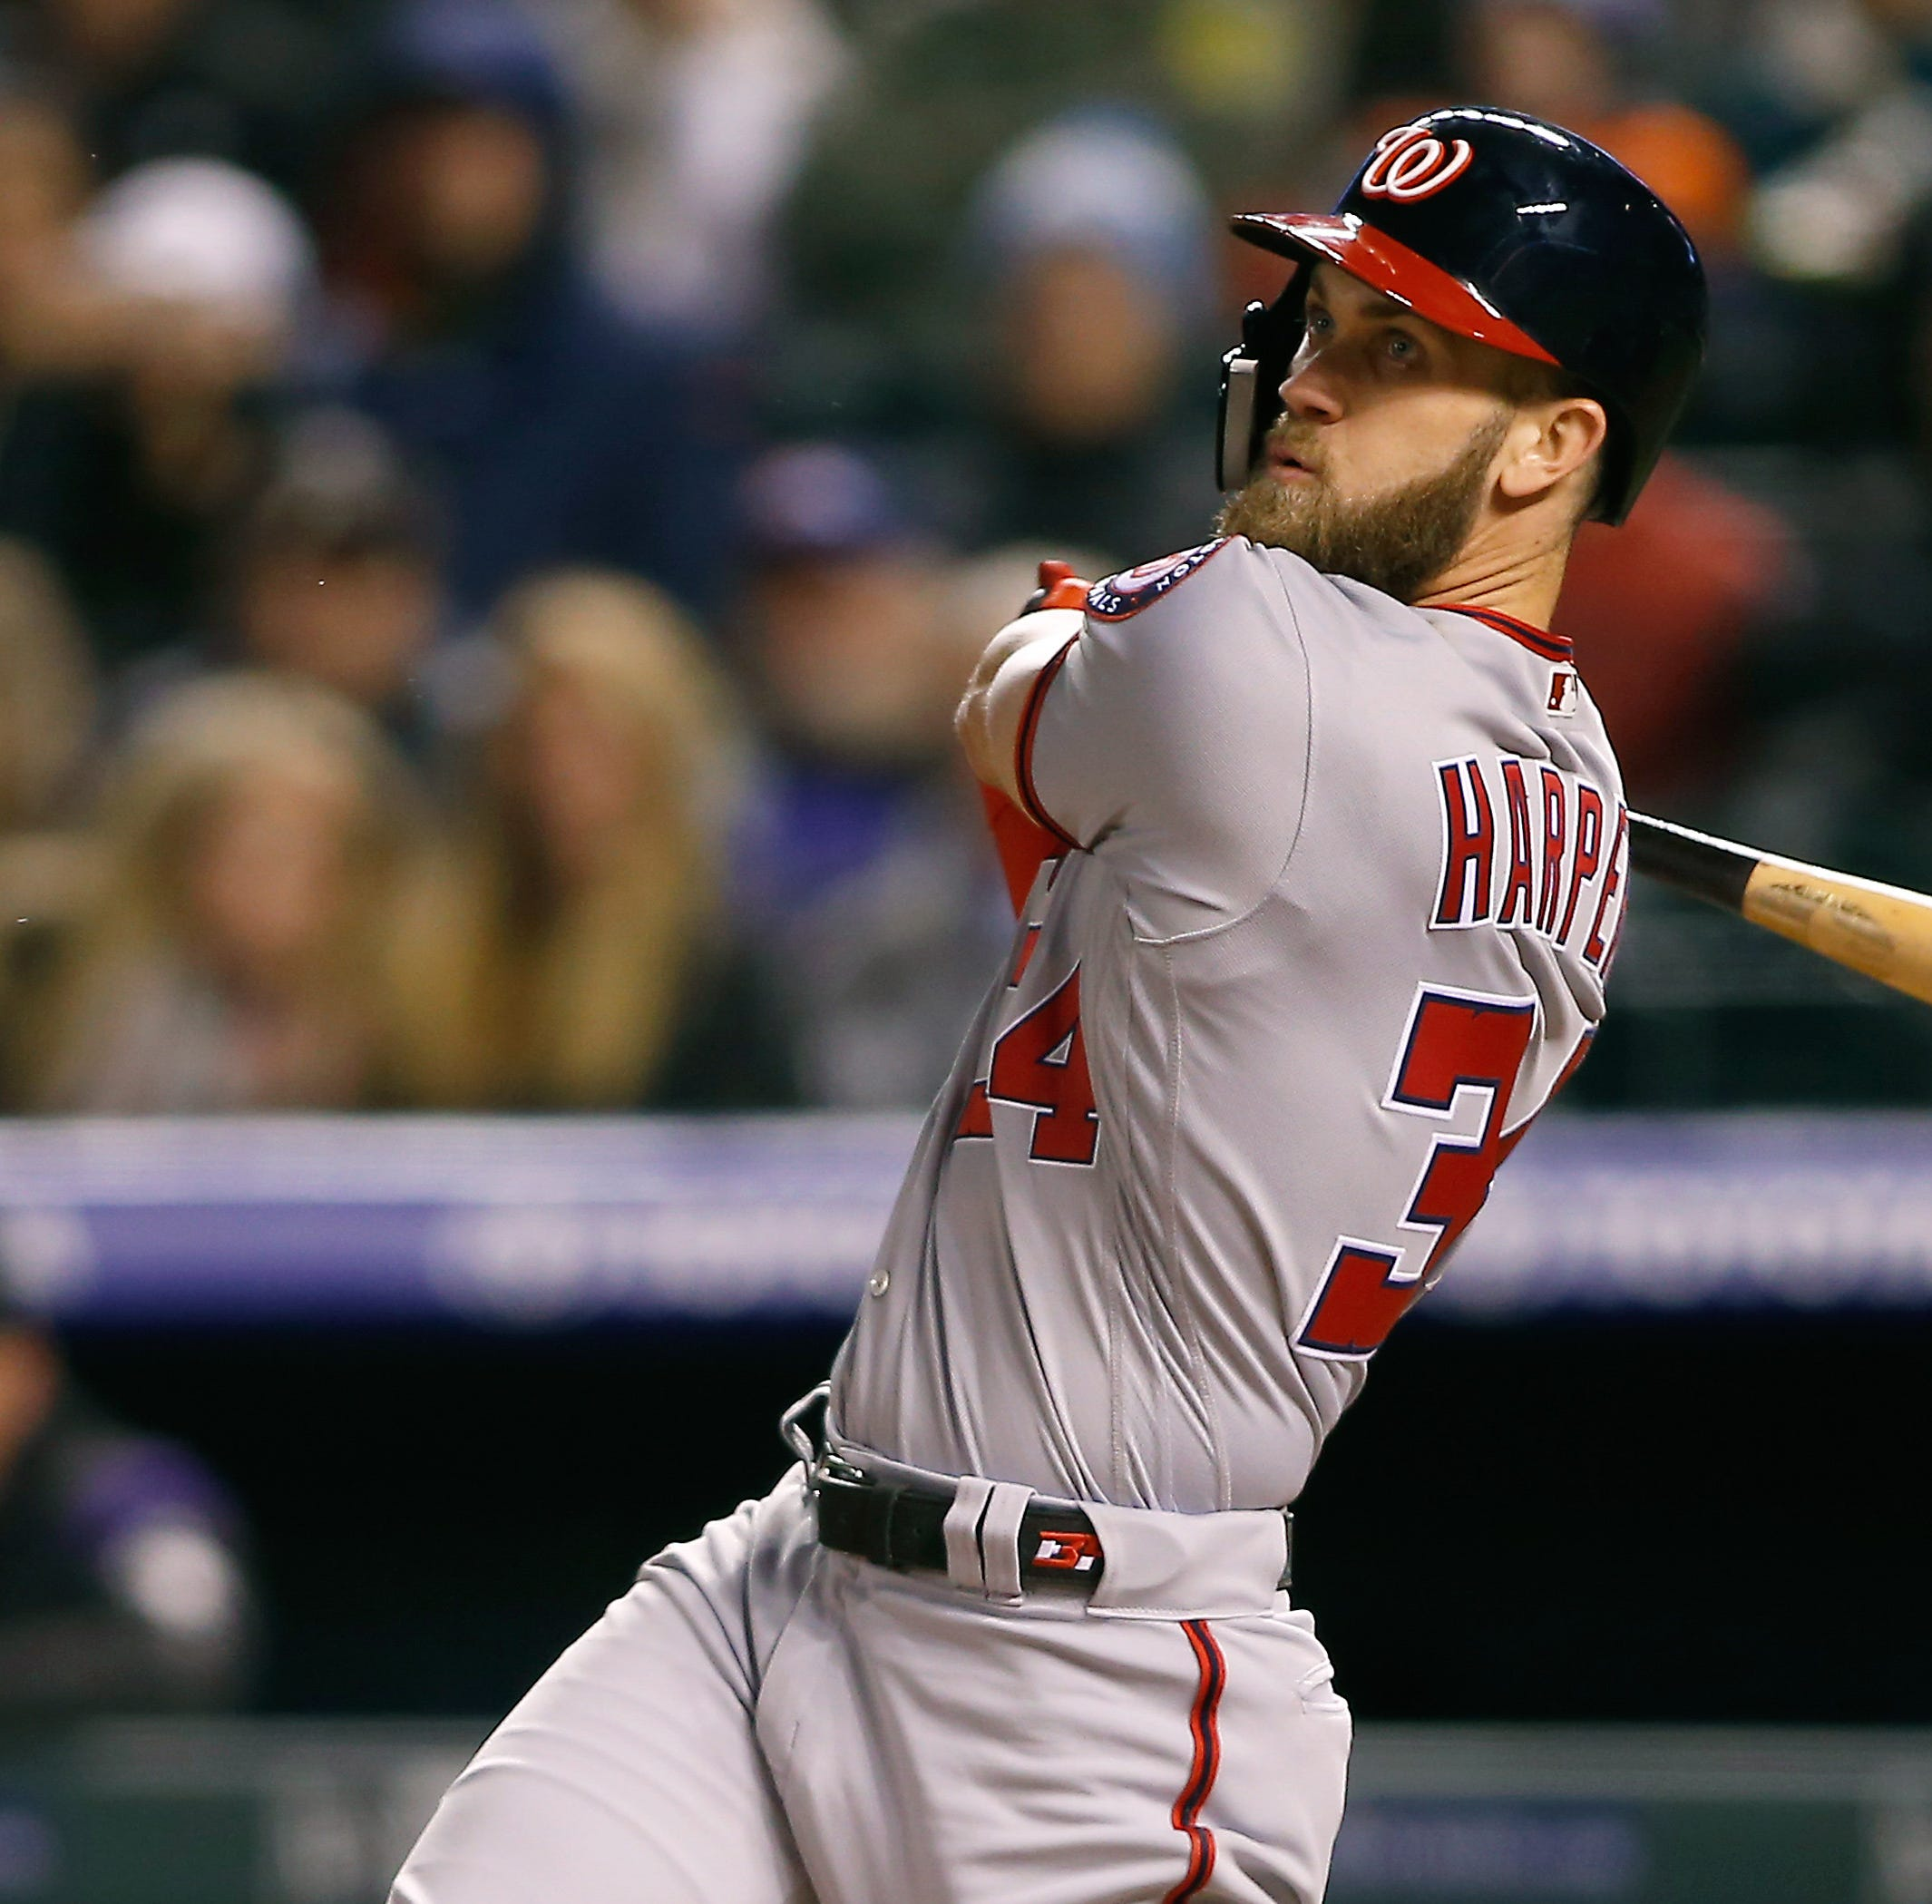 Philadelphia Phillies emerge as clear-cut favorite to land Bryce Harper after meeting